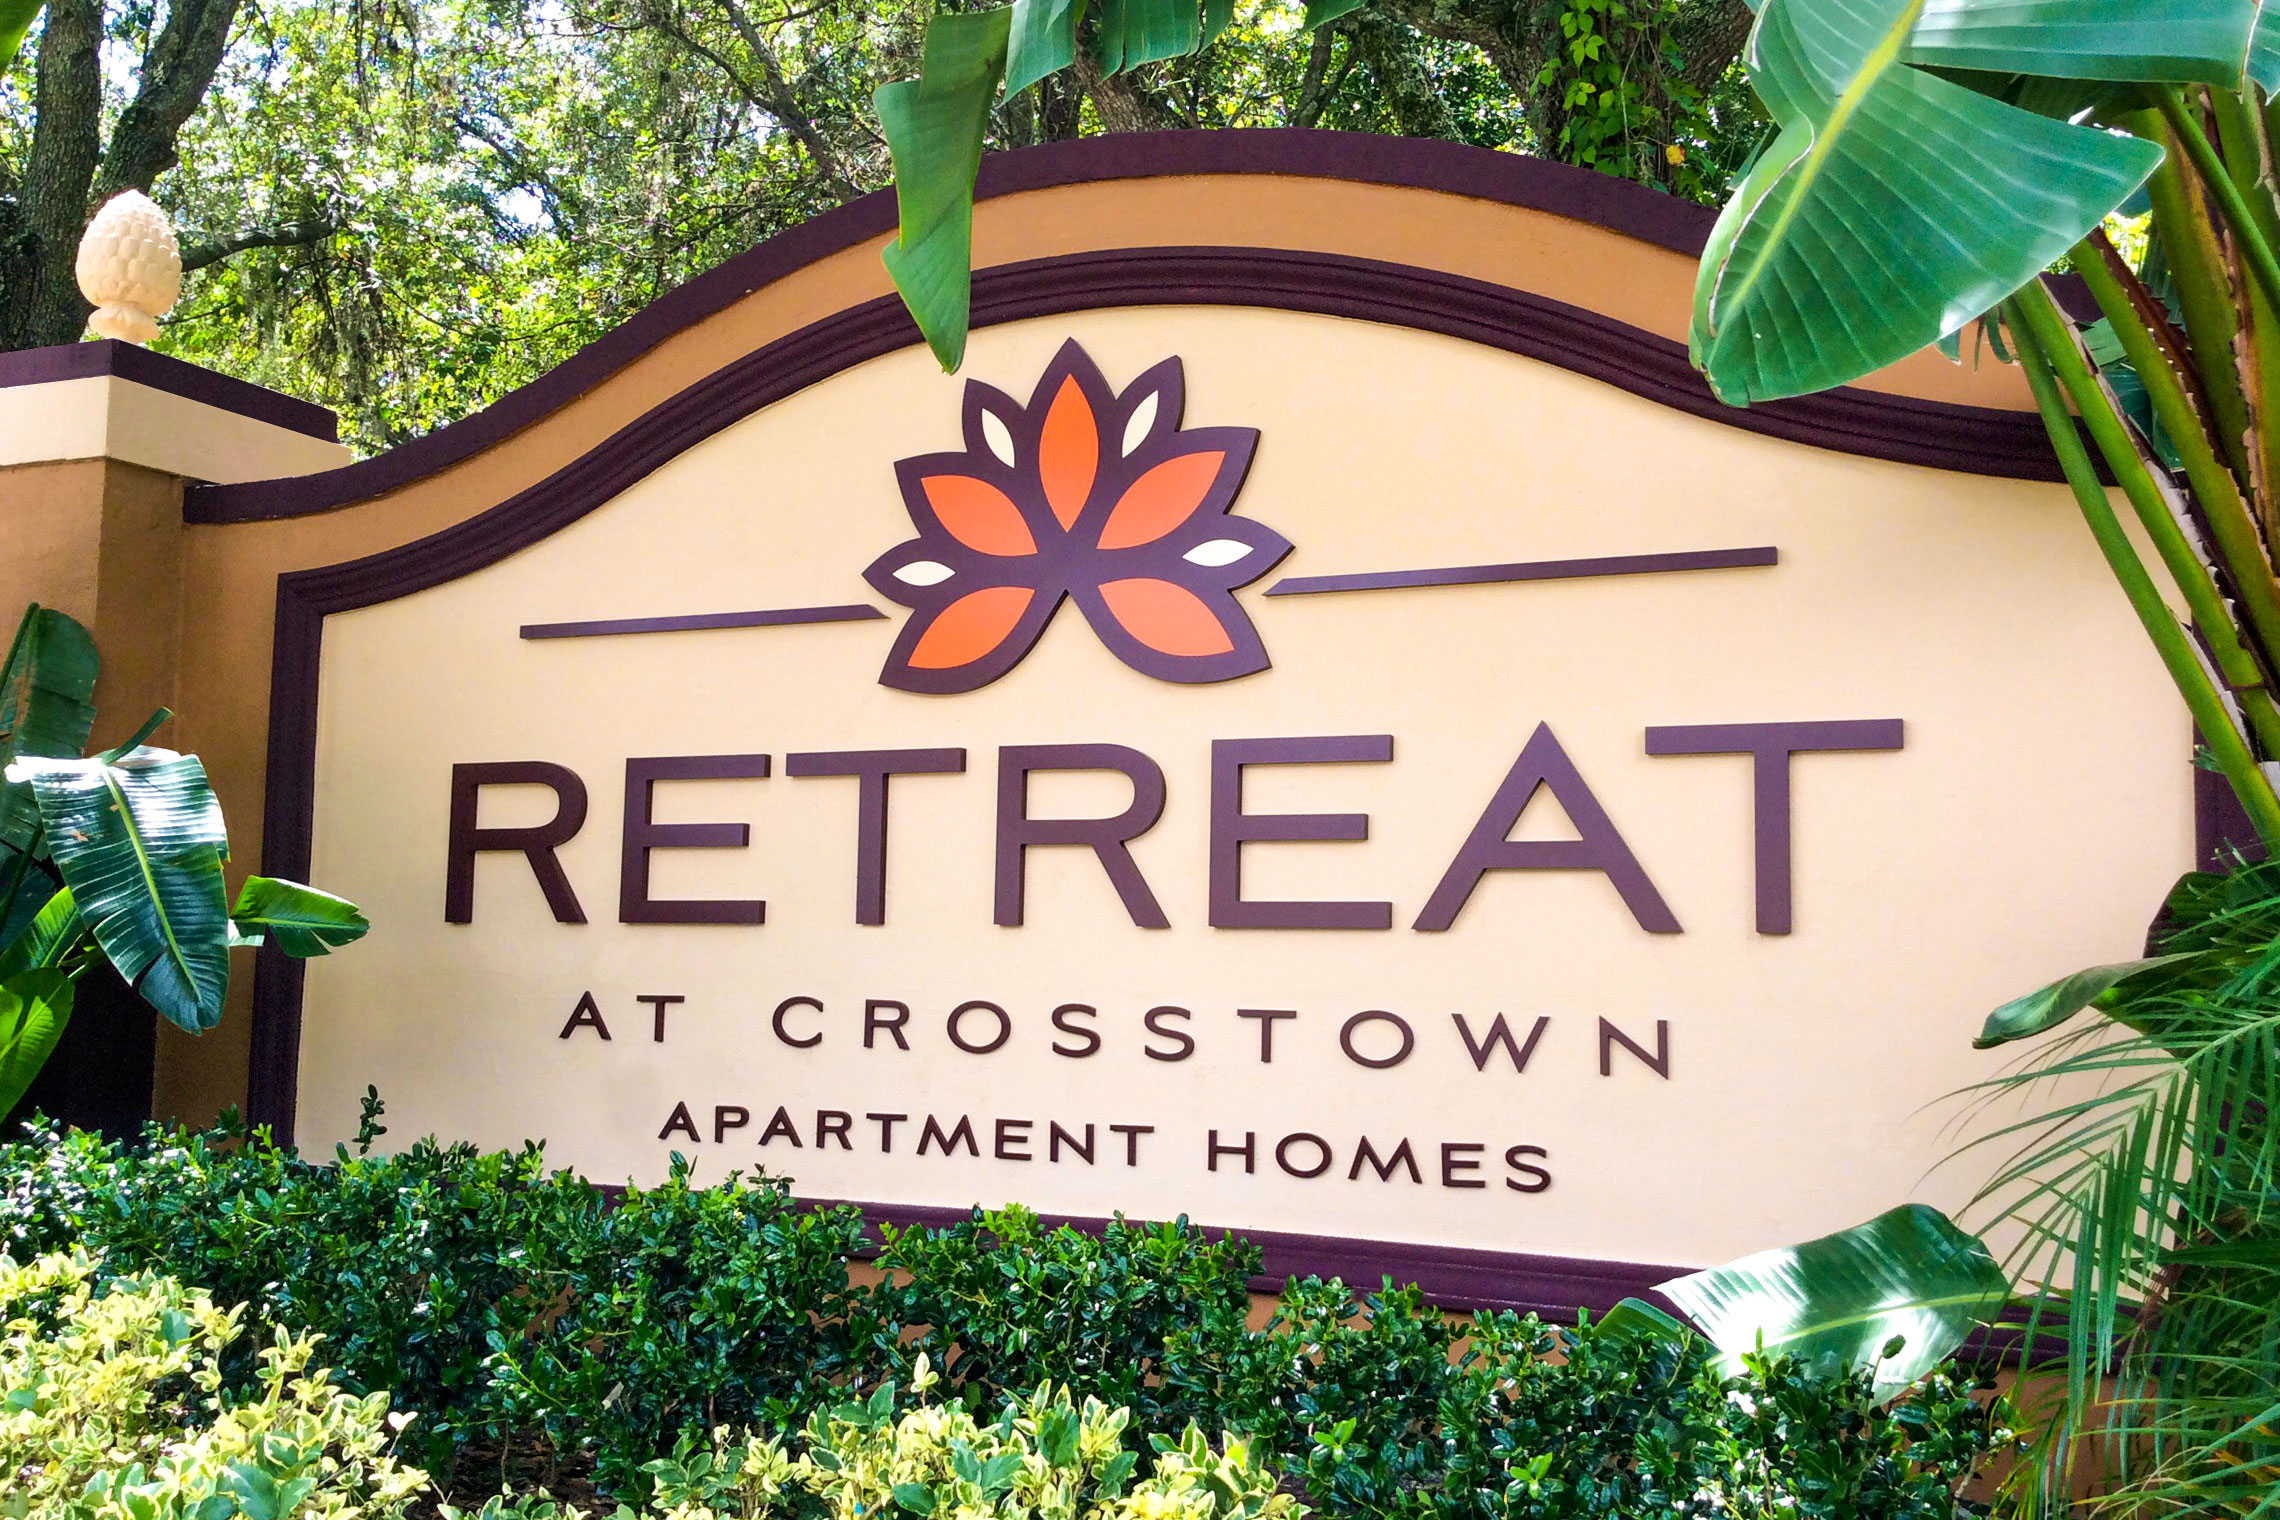 Retreat at Crosstown Apartment Homes Monument